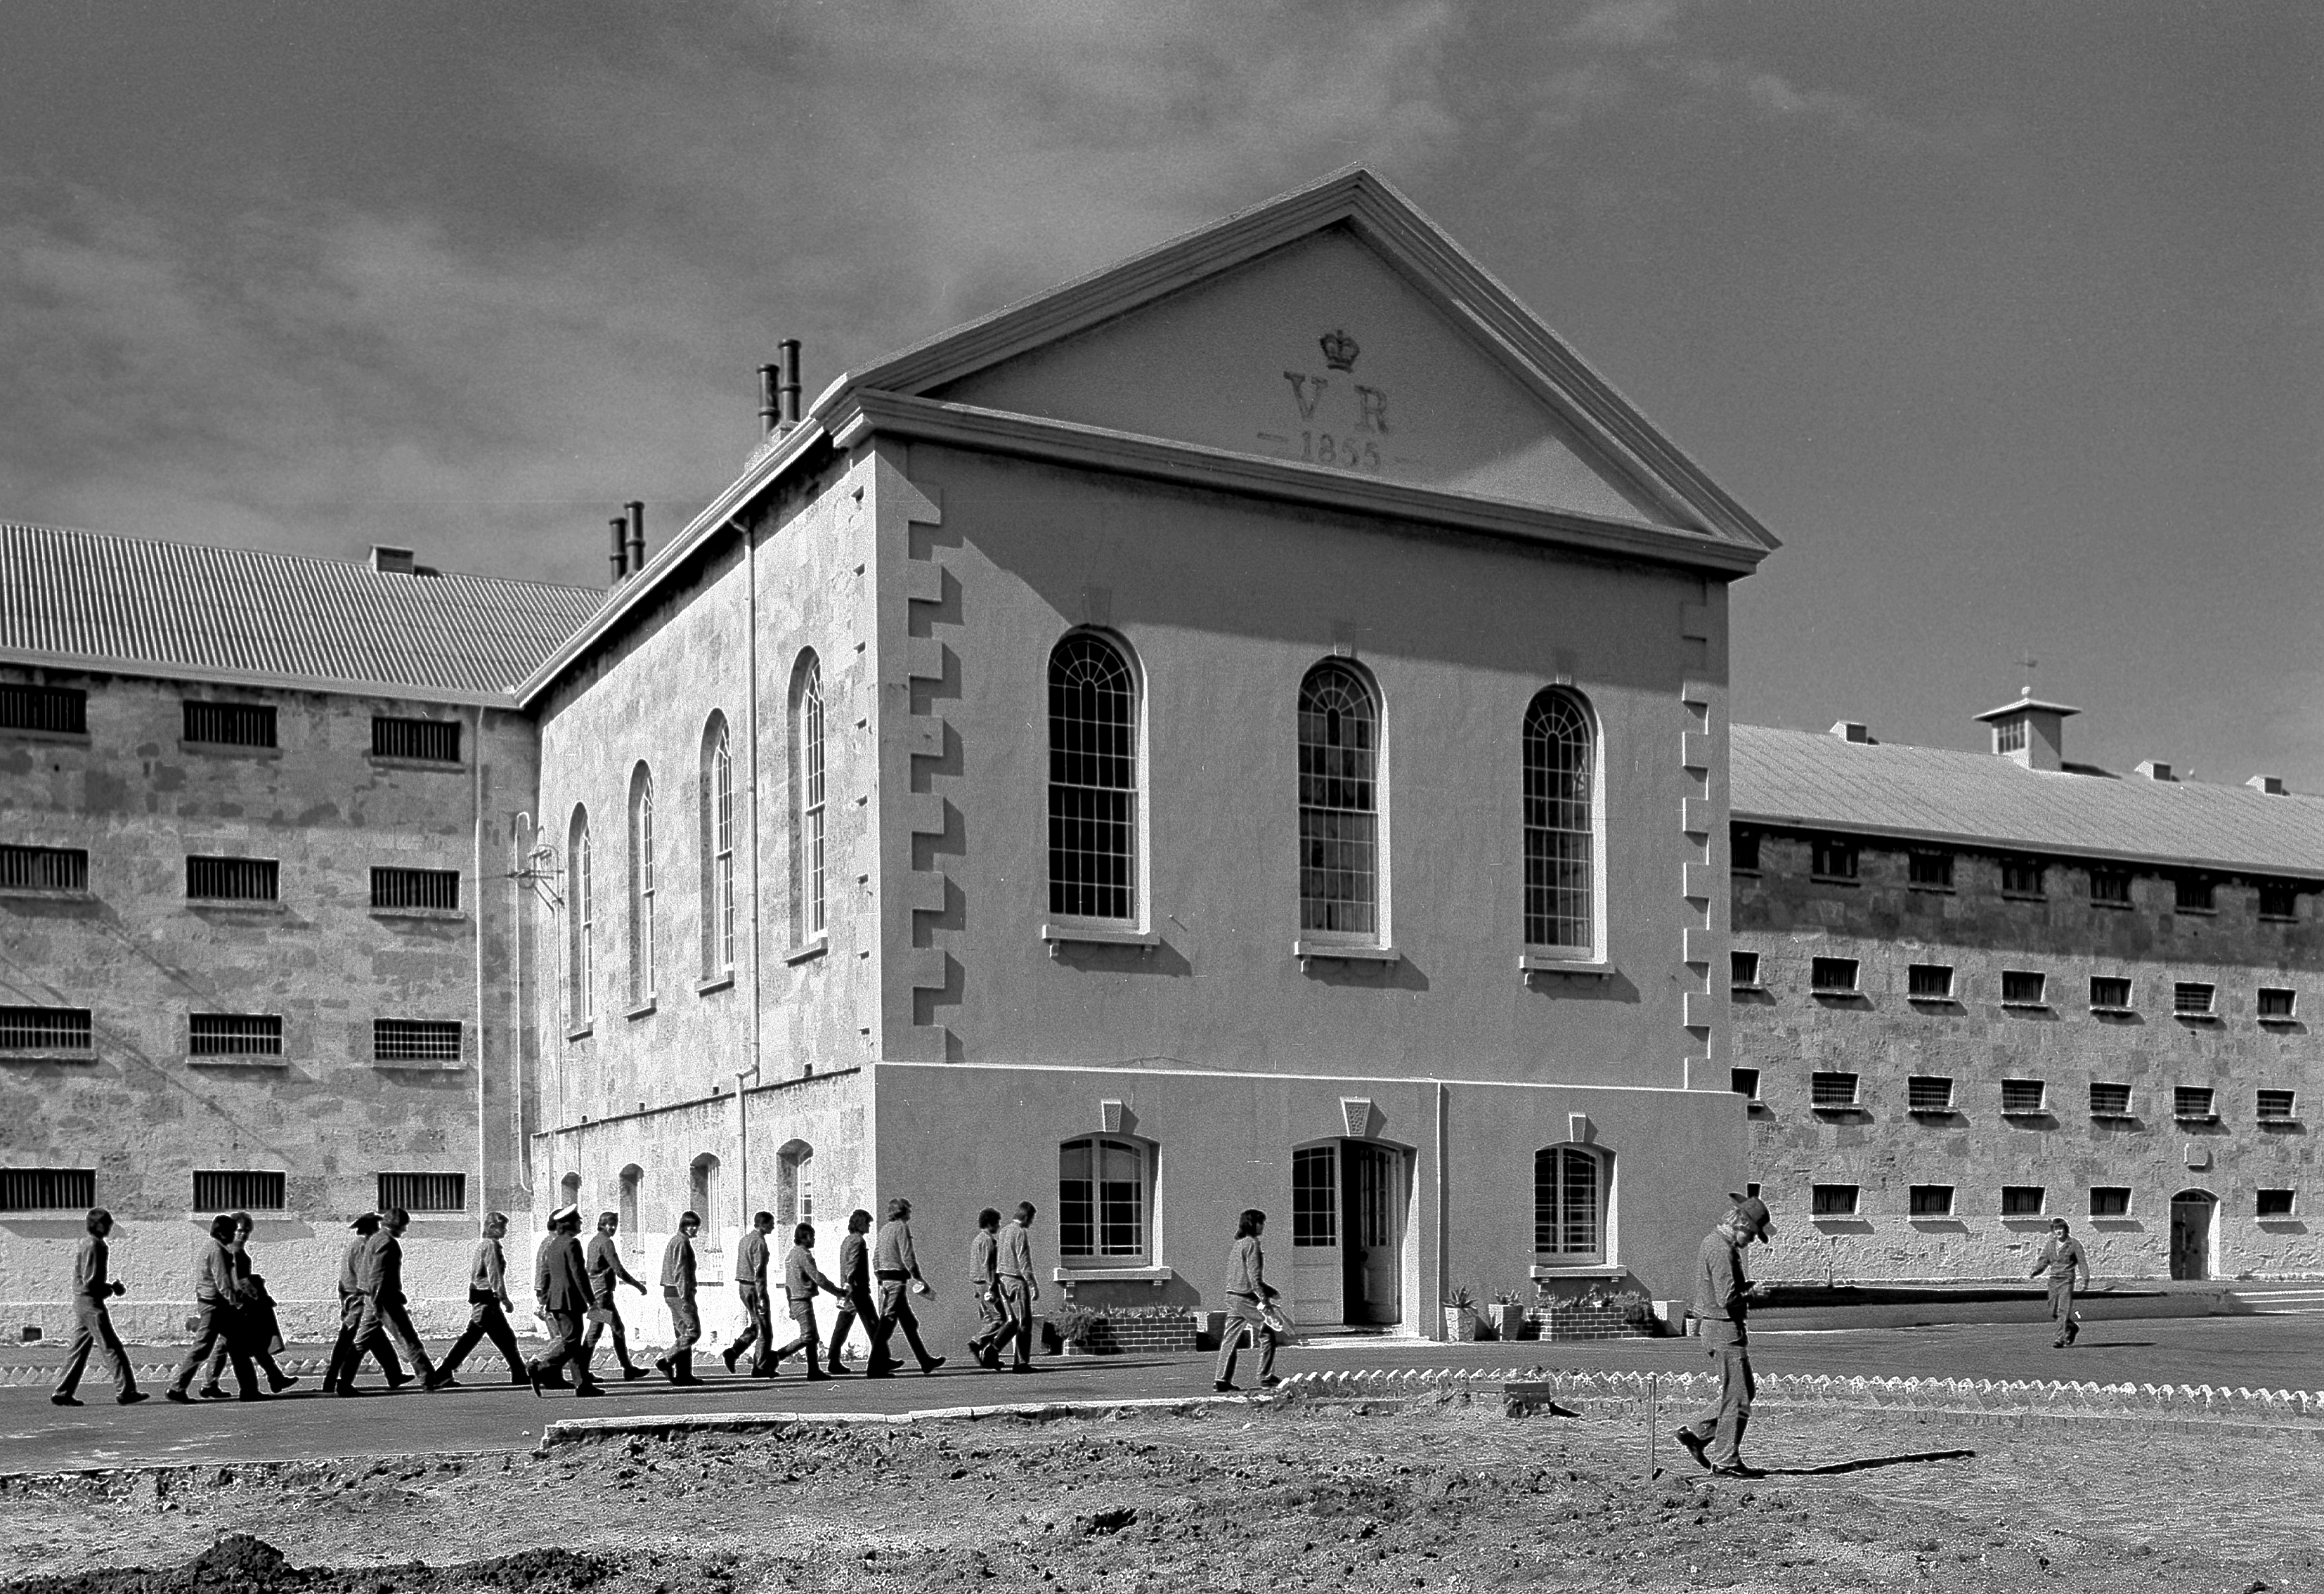 a look at the united states penal system A debtors' prison is any prison, jail, or other detention facility in which people are incarcerated for their inability, refusal, or failure to pay debt what is the history of debtors' prisons in the united states.